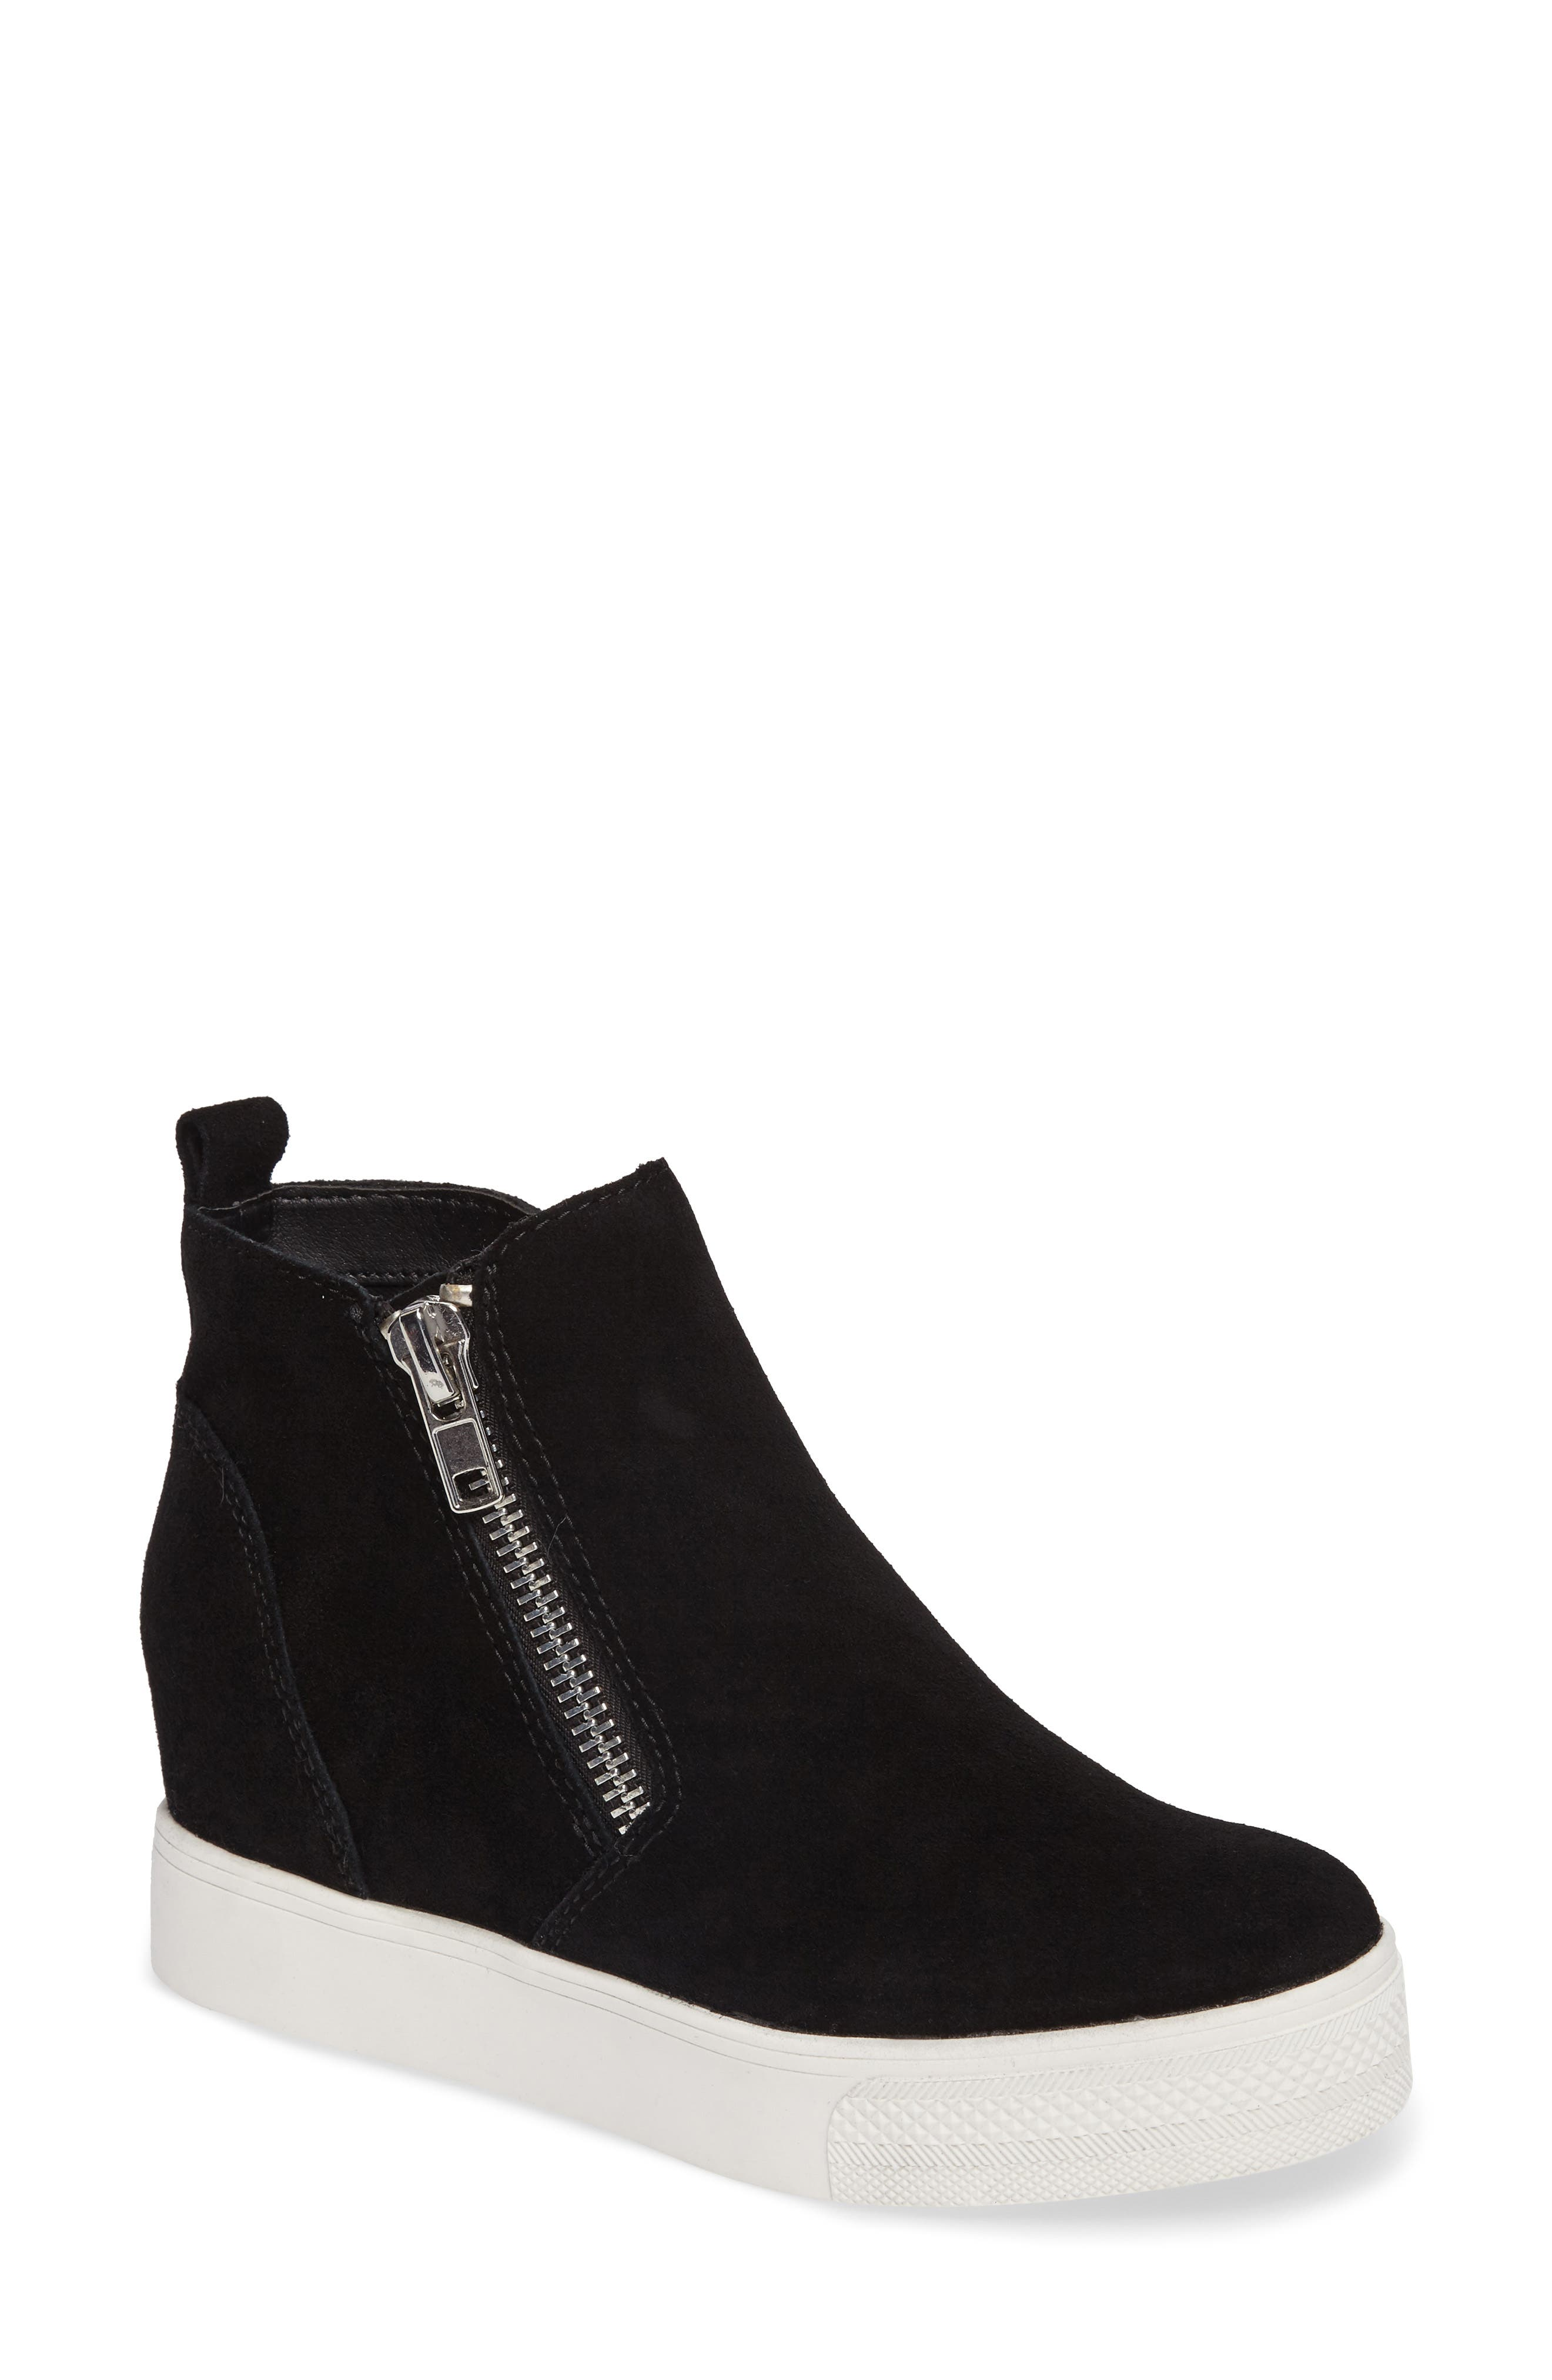 Wedgie High Top Platform Sneaker,                             Main thumbnail 1, color,                             BLACK SUEDE